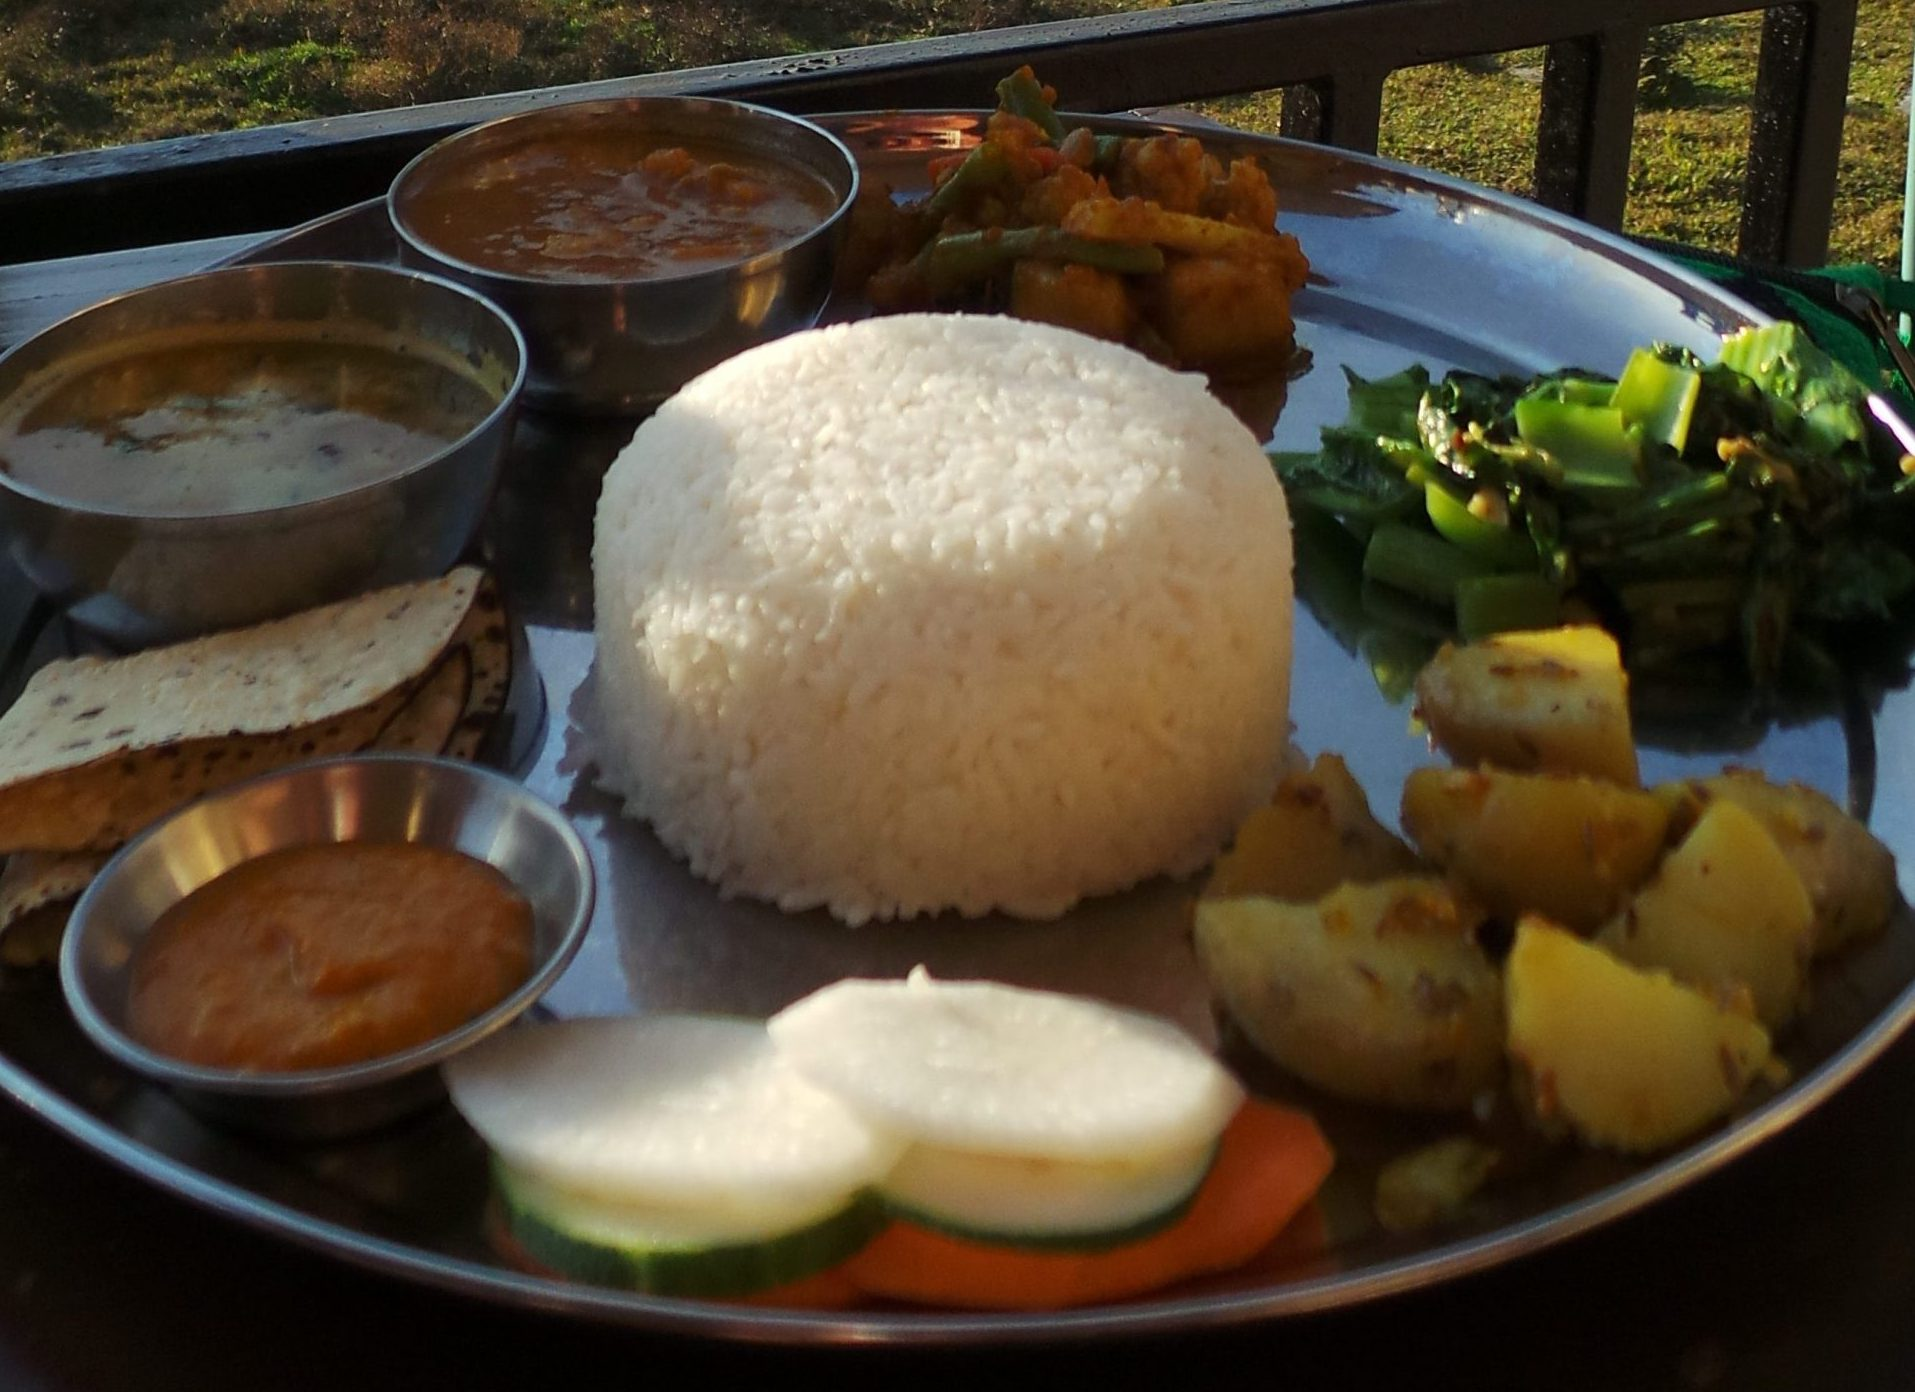 Rice served with vegetables and curries on a silver plate